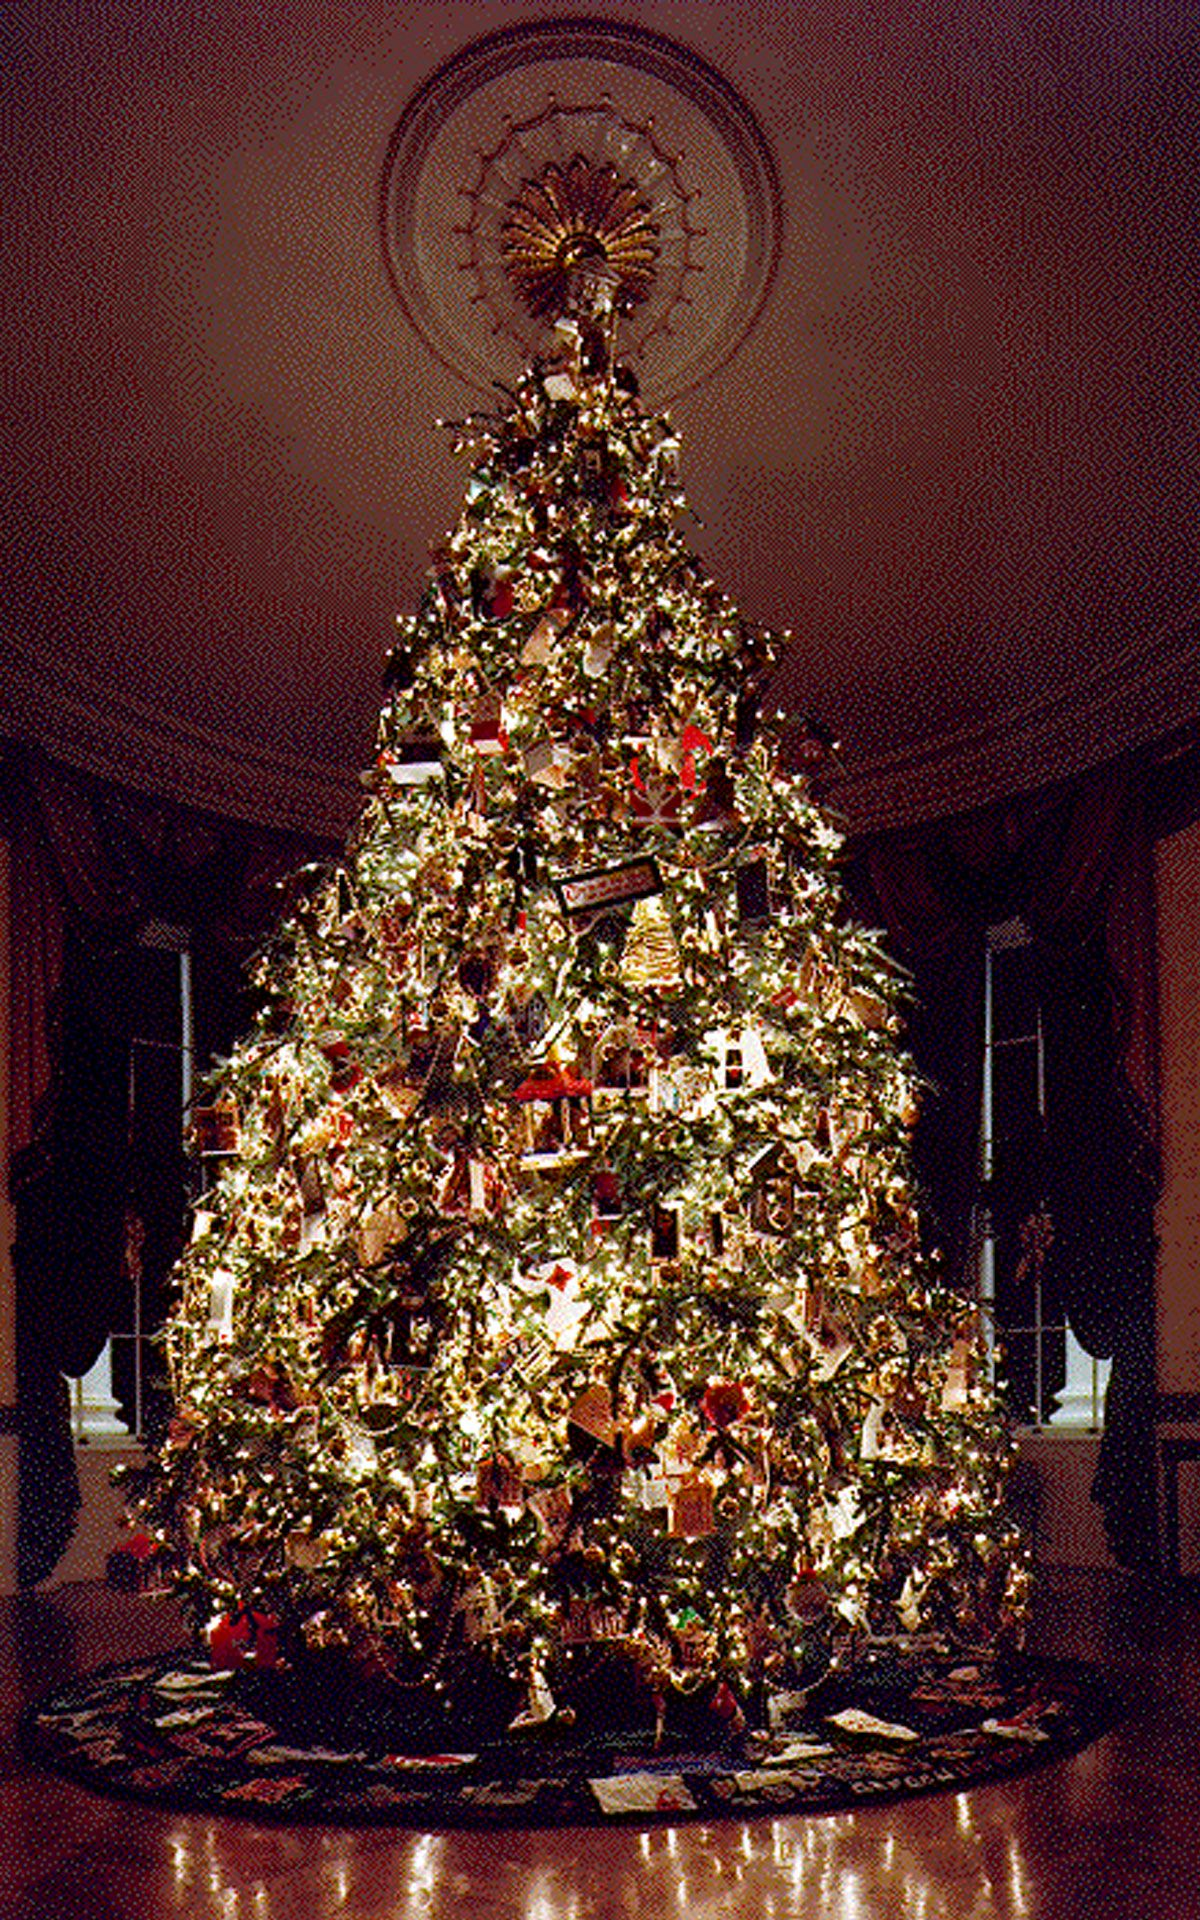 christmas tree decorating ideas 2013 luxury christmas tree decorations ideas real house design background